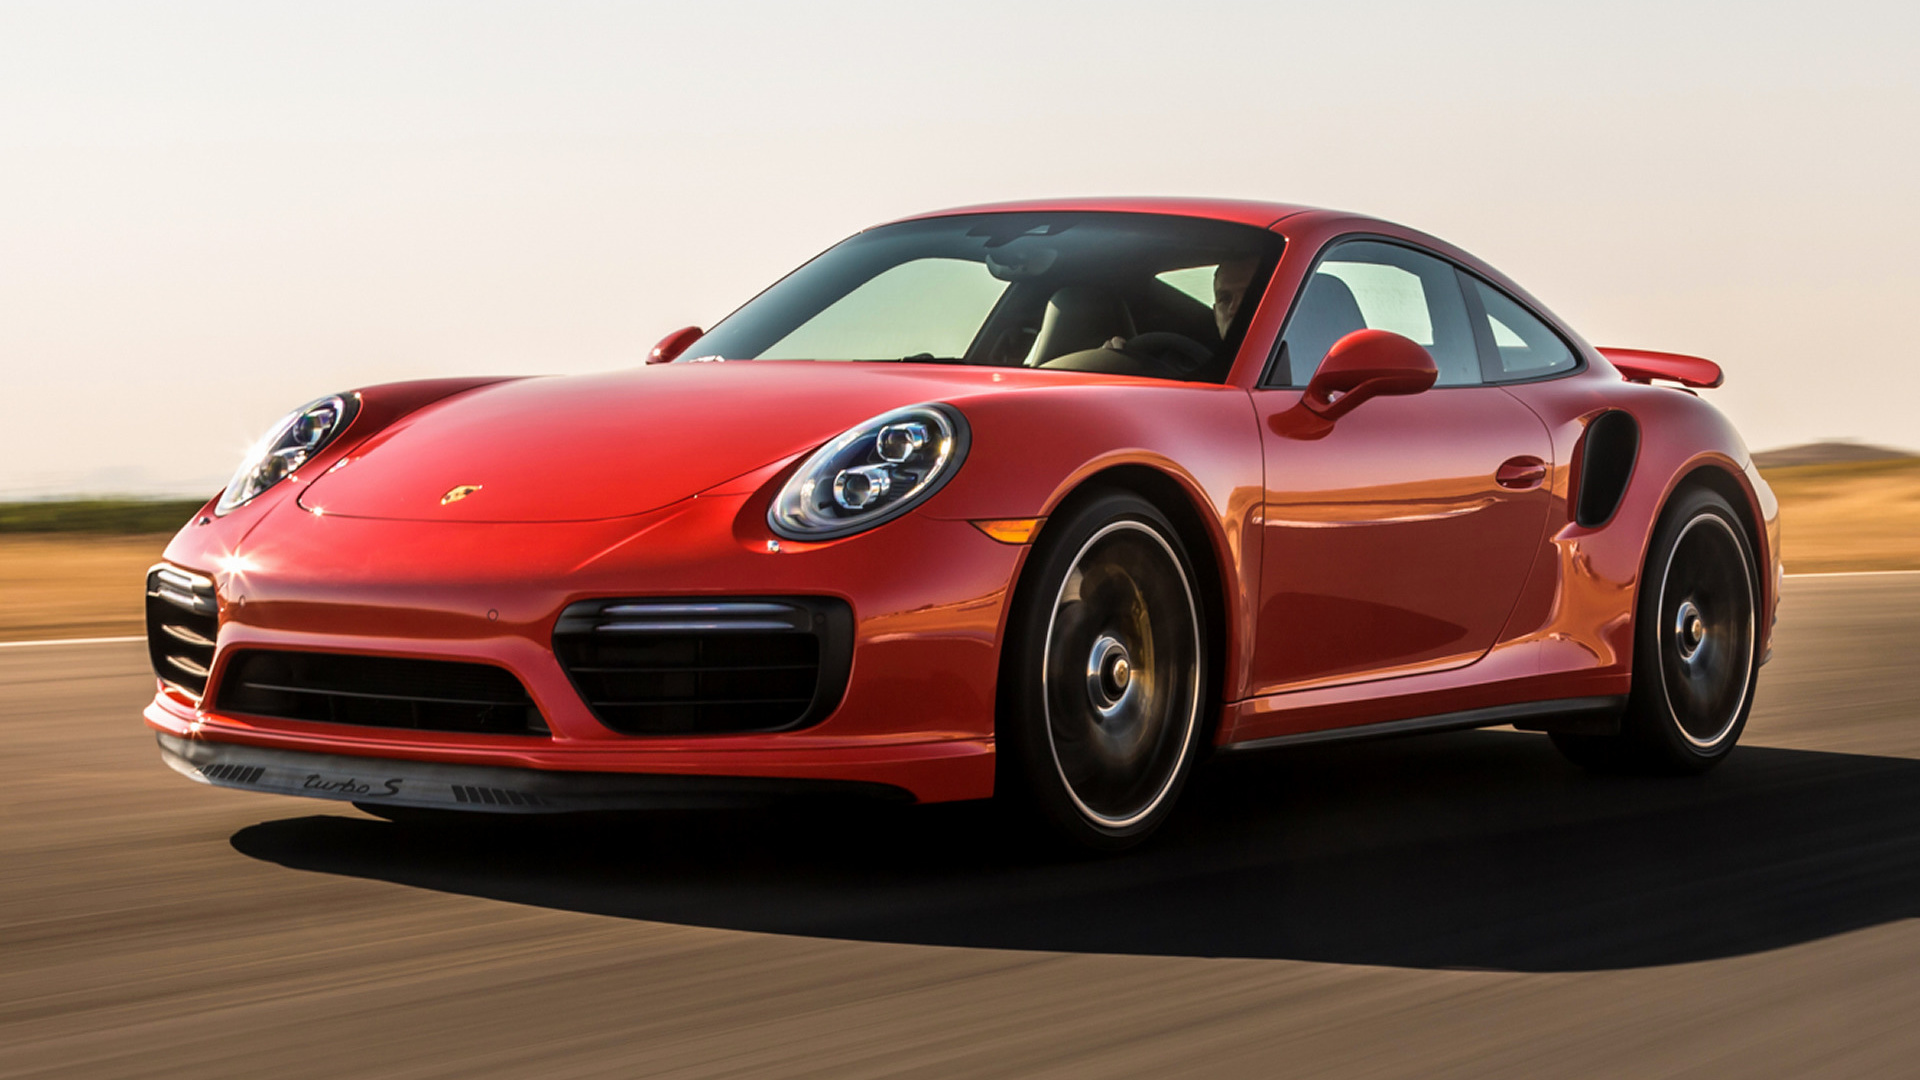 2017 porsche 911 turbo s us wallpapers and hd images car pixel. Black Bedroom Furniture Sets. Home Design Ideas